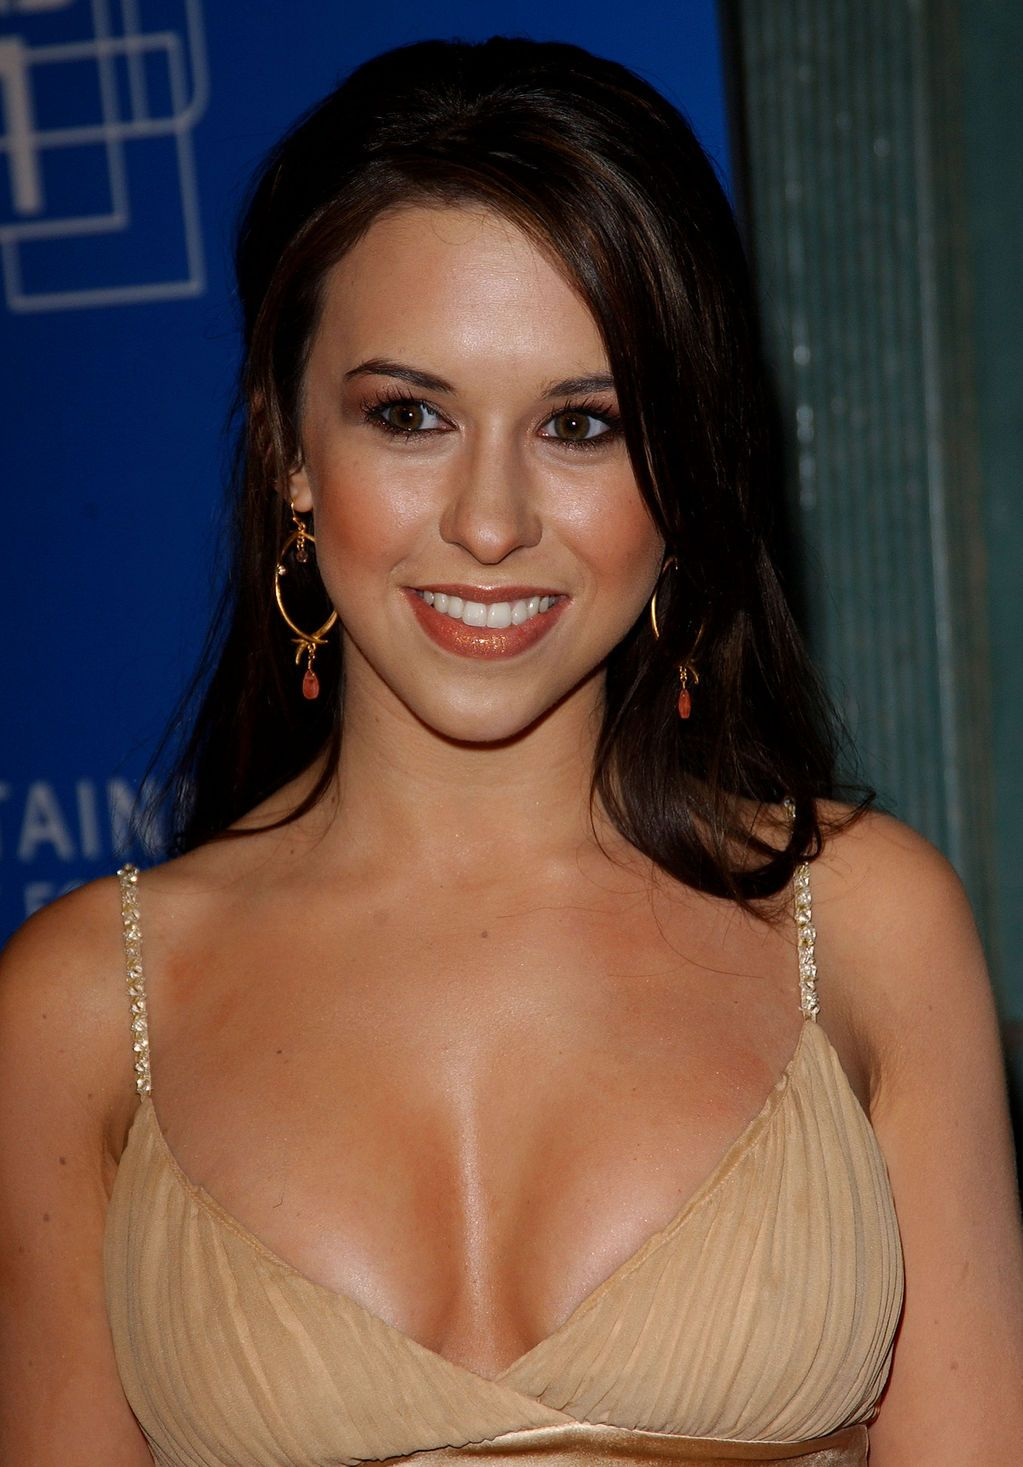 Lacey-Chabert-hot-boobs